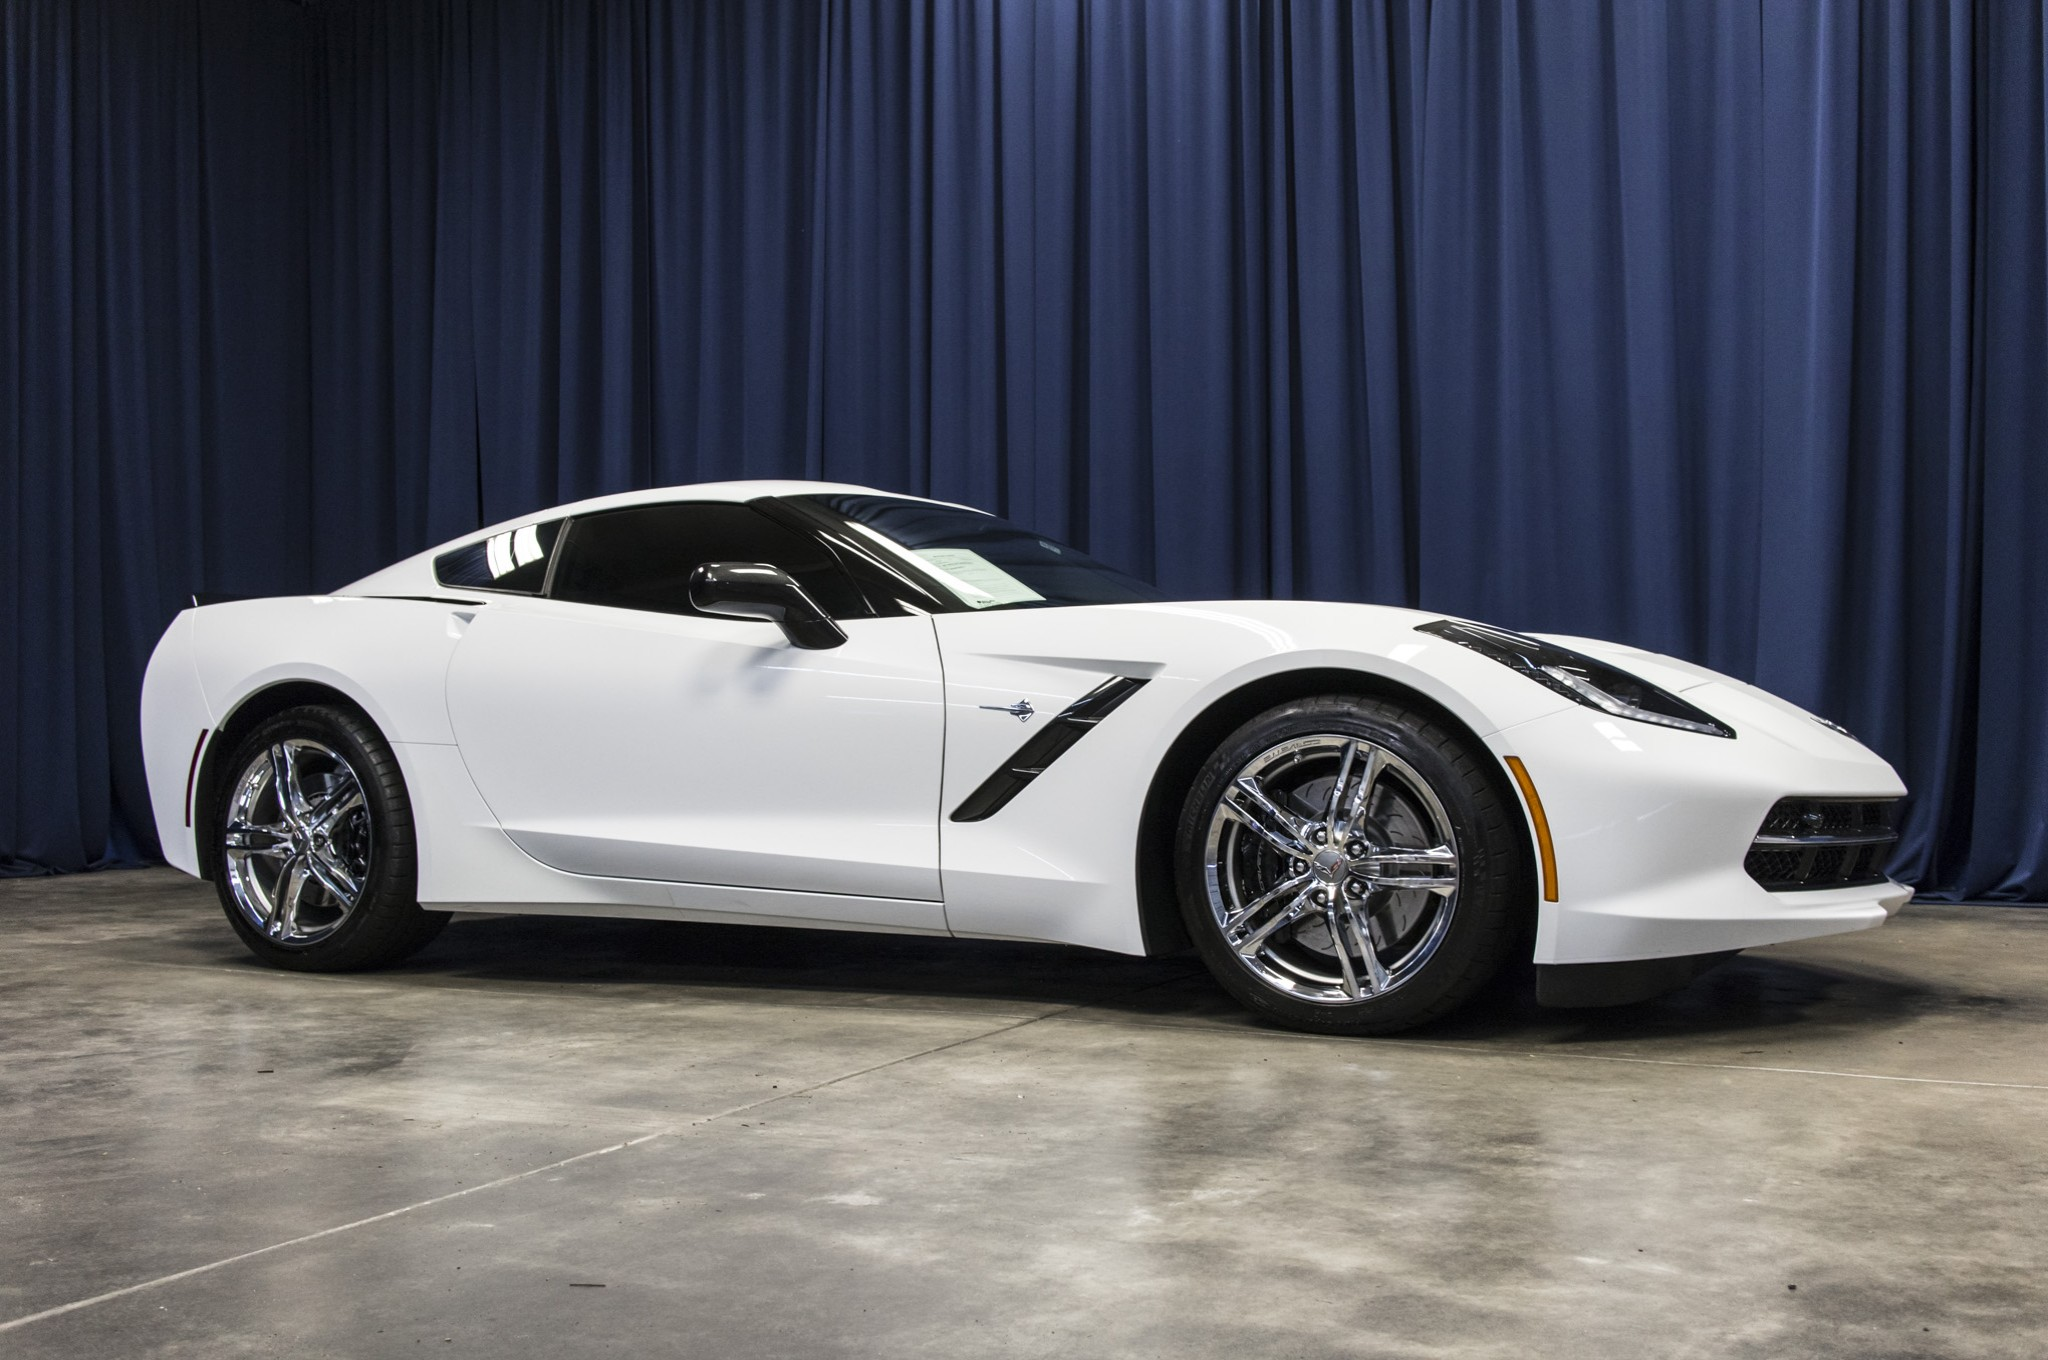 Used 2016 Chevrolet Corvette Stingray Z51 RWD Coupe For Sale